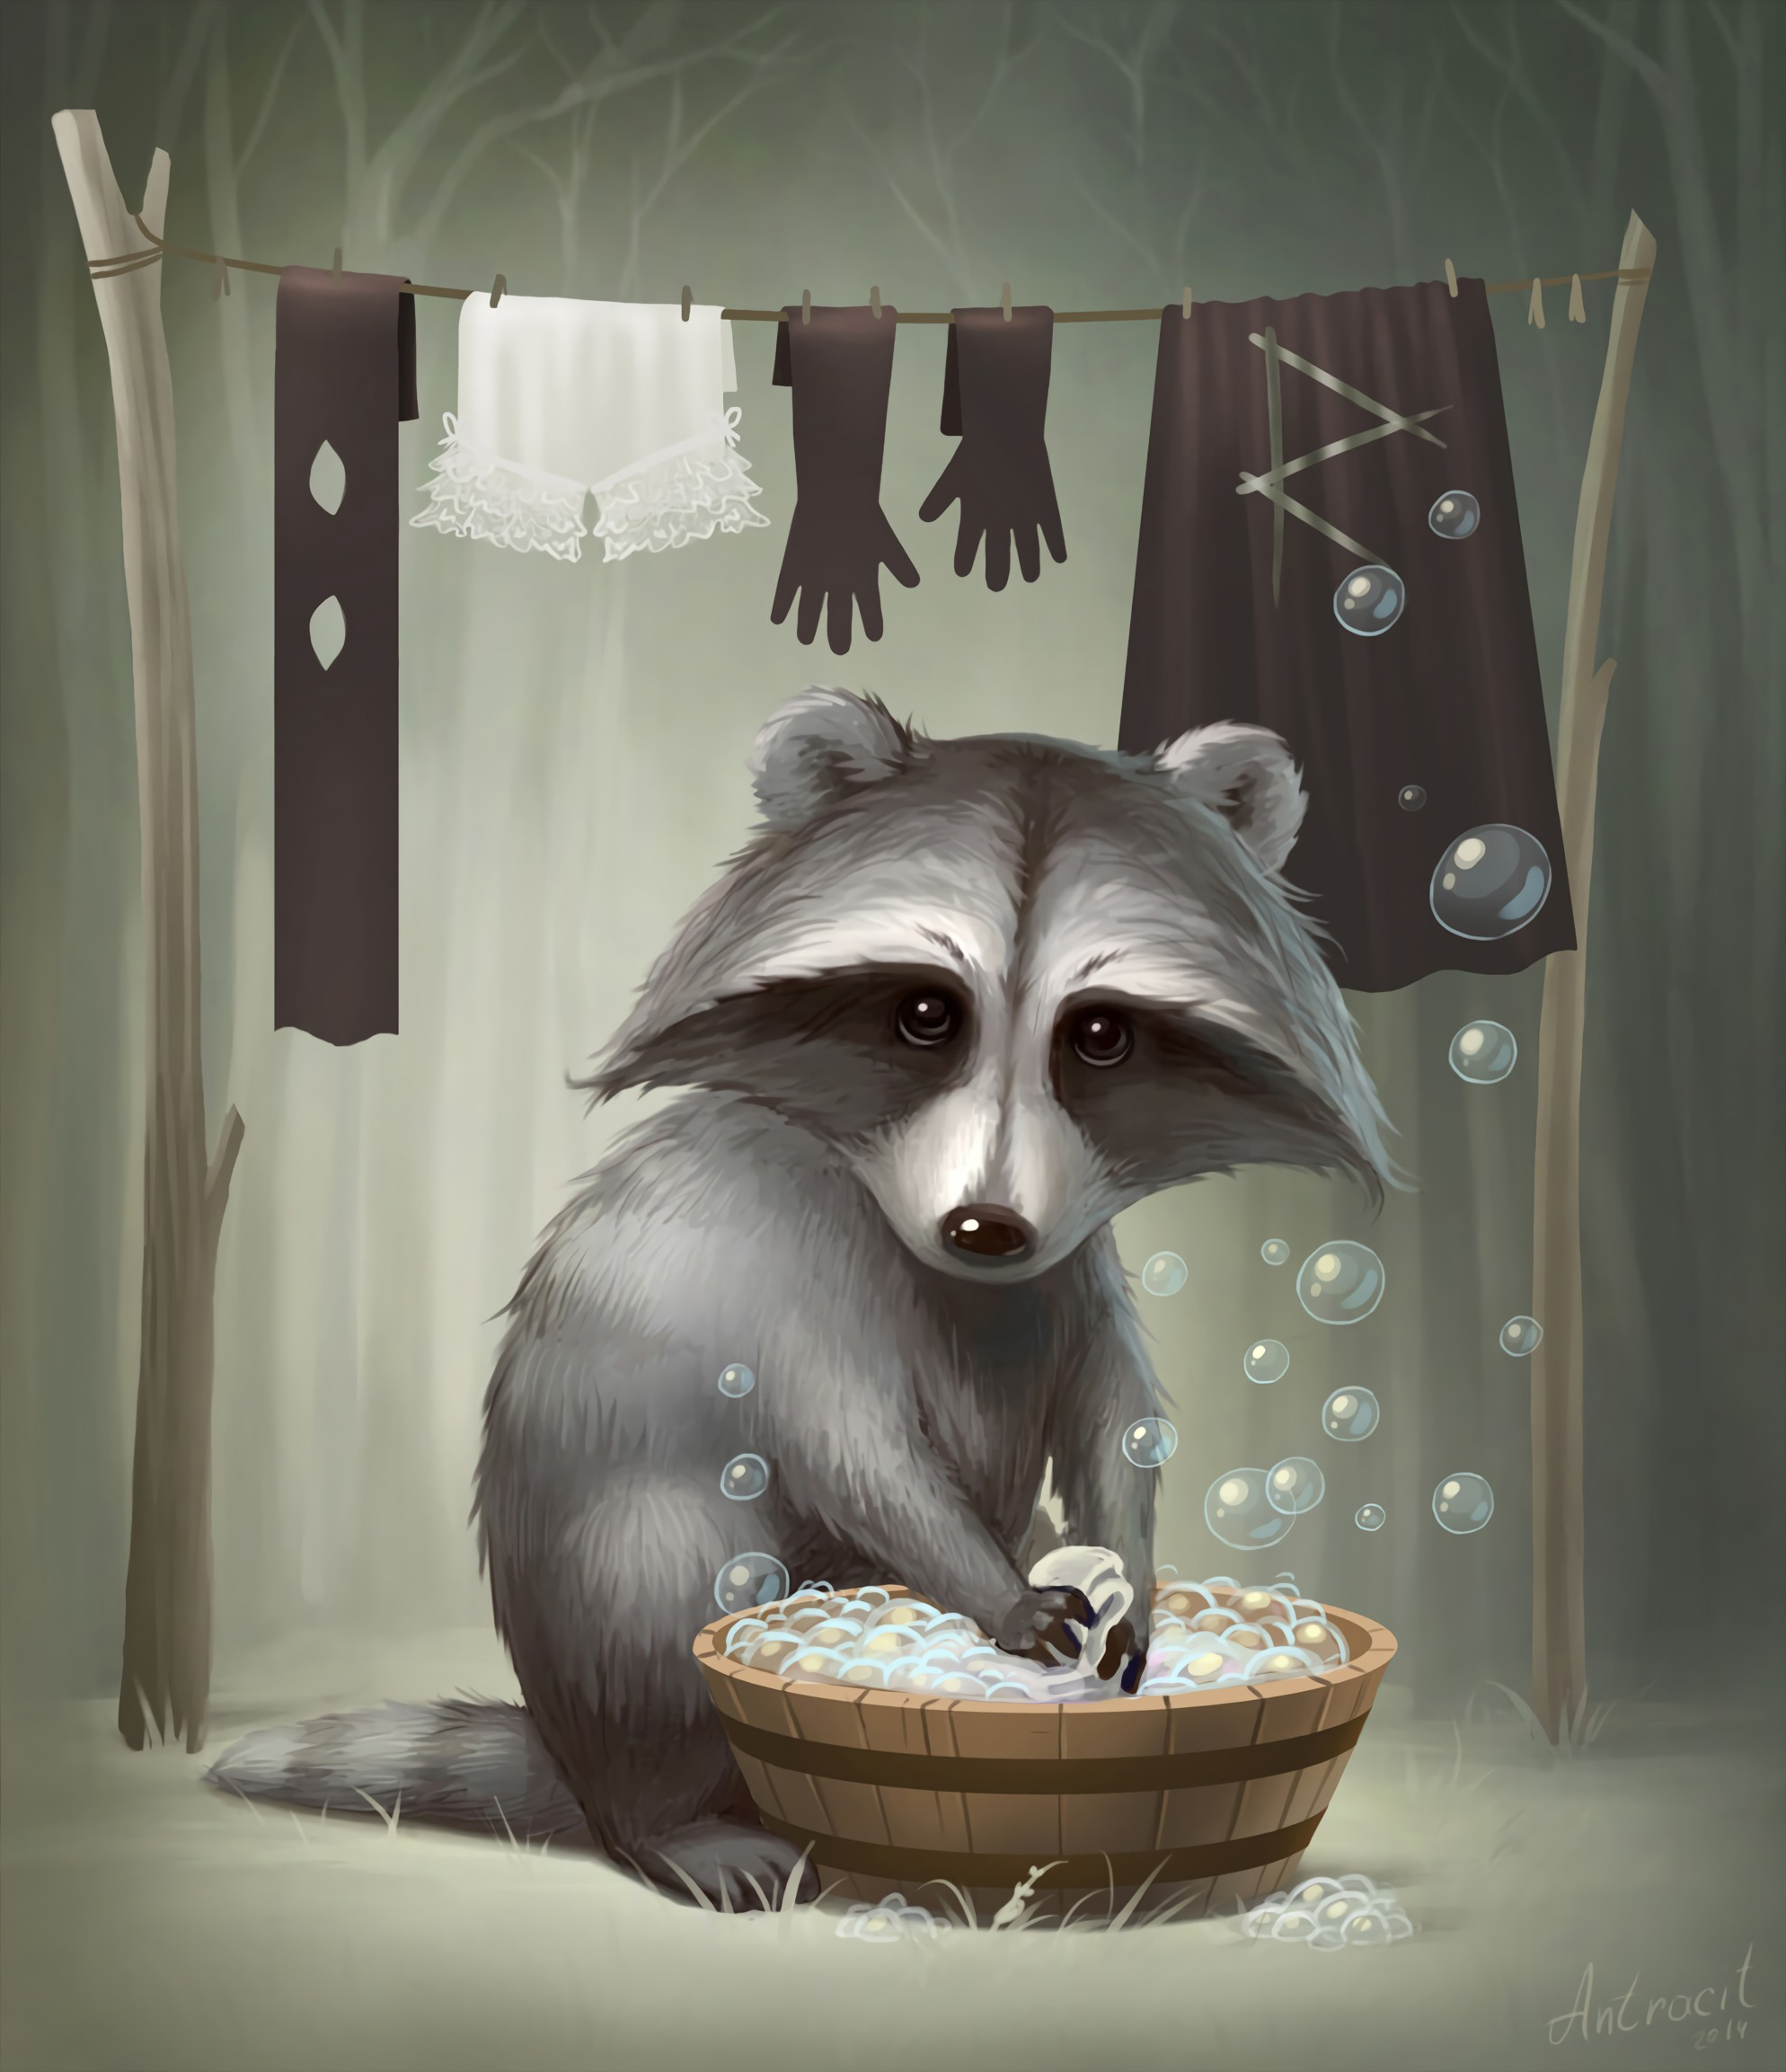 104291 download wallpaper Raccoon, Nice, Sweetheart, Art screensavers and pictures for free